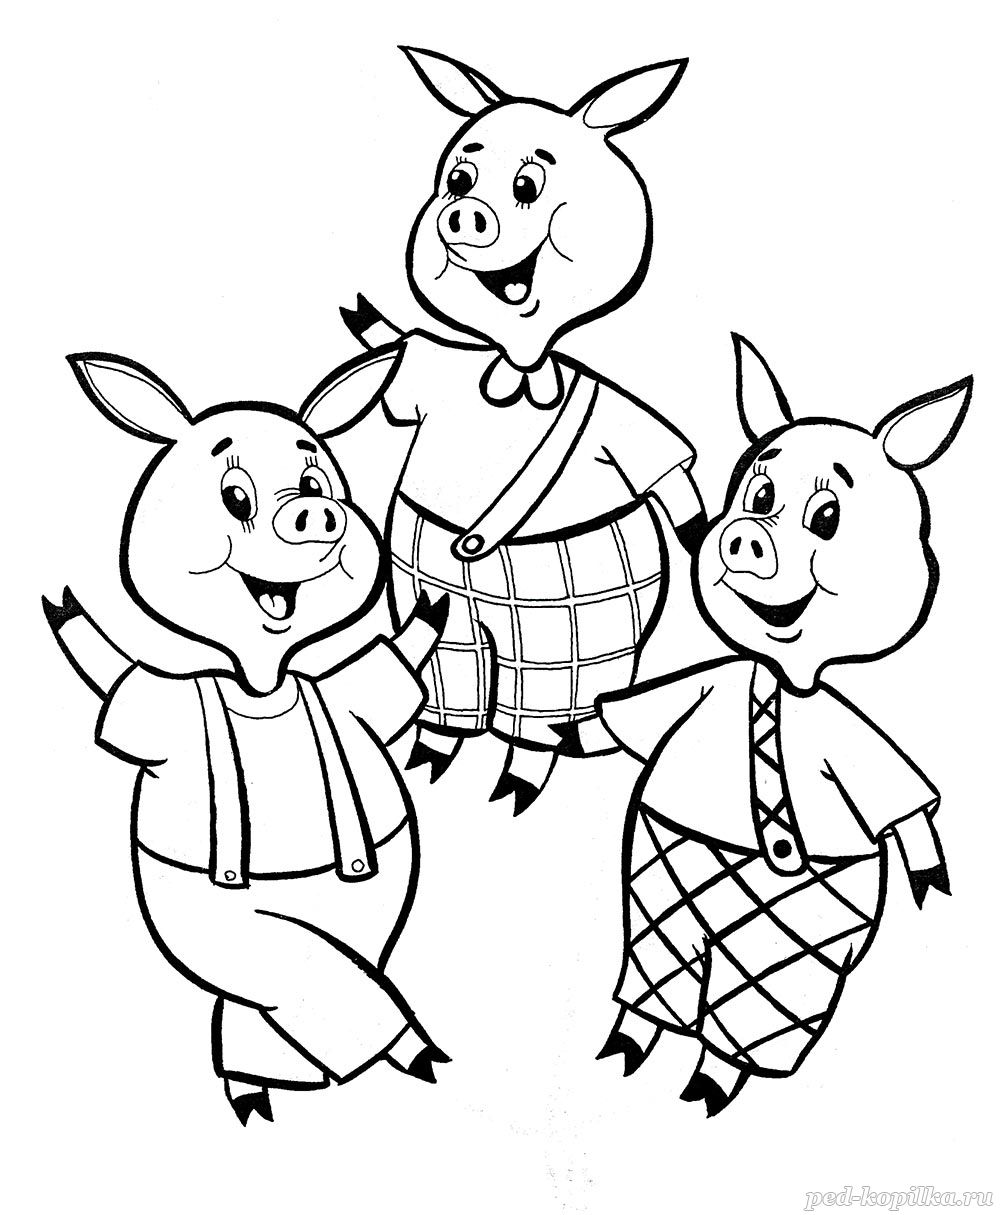 Printable Coloring Pictures Of The Three Little Pigs